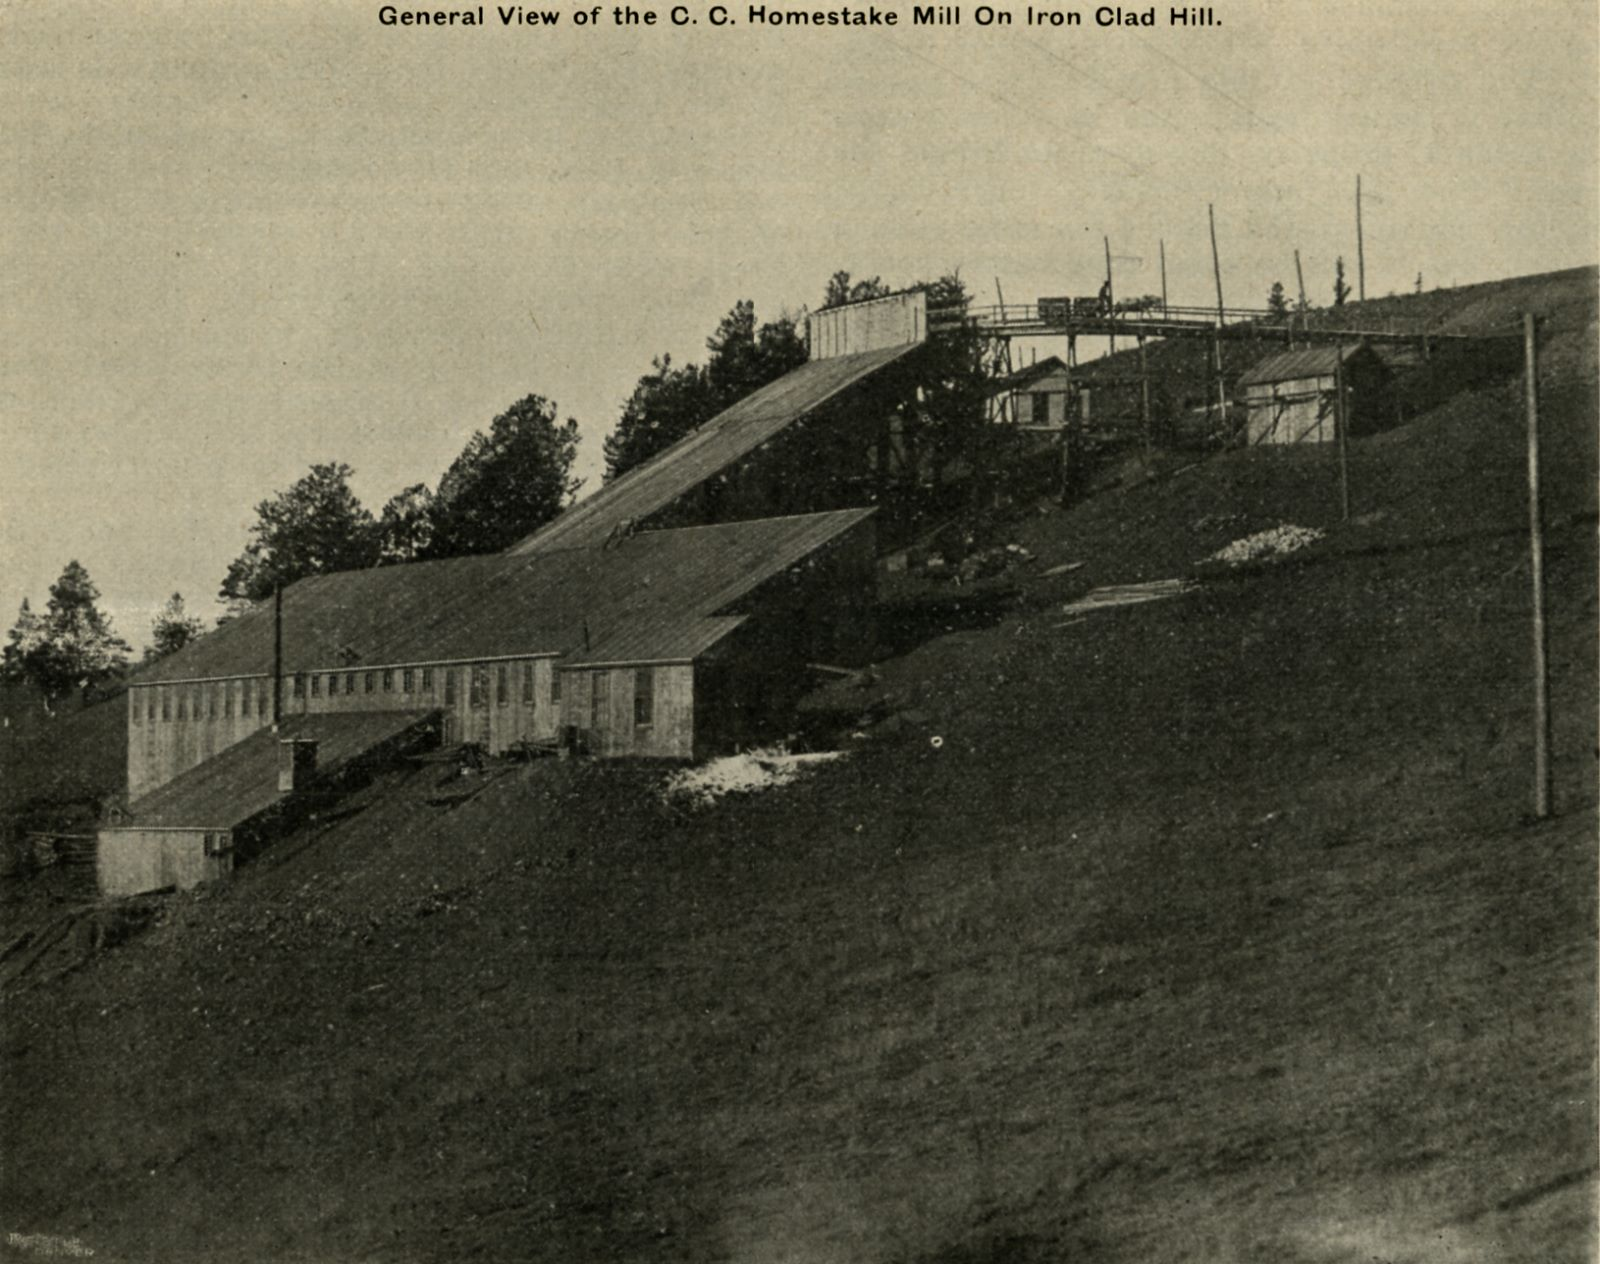 General View of the C. C. Homestake Mill on Iron Clad Hill.